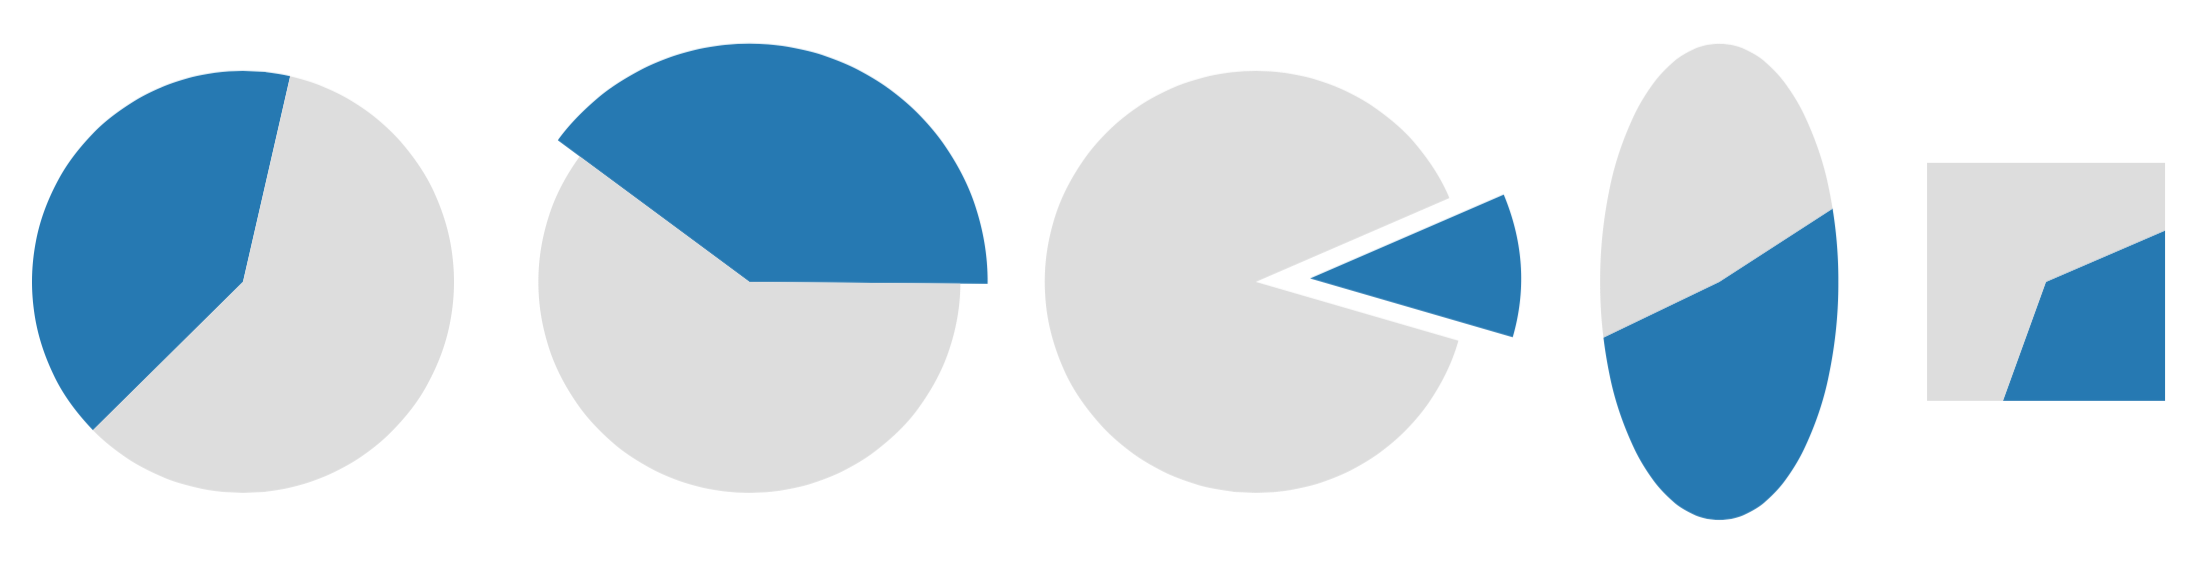 An Illustrated Tour Of The Pie Chart Study Results